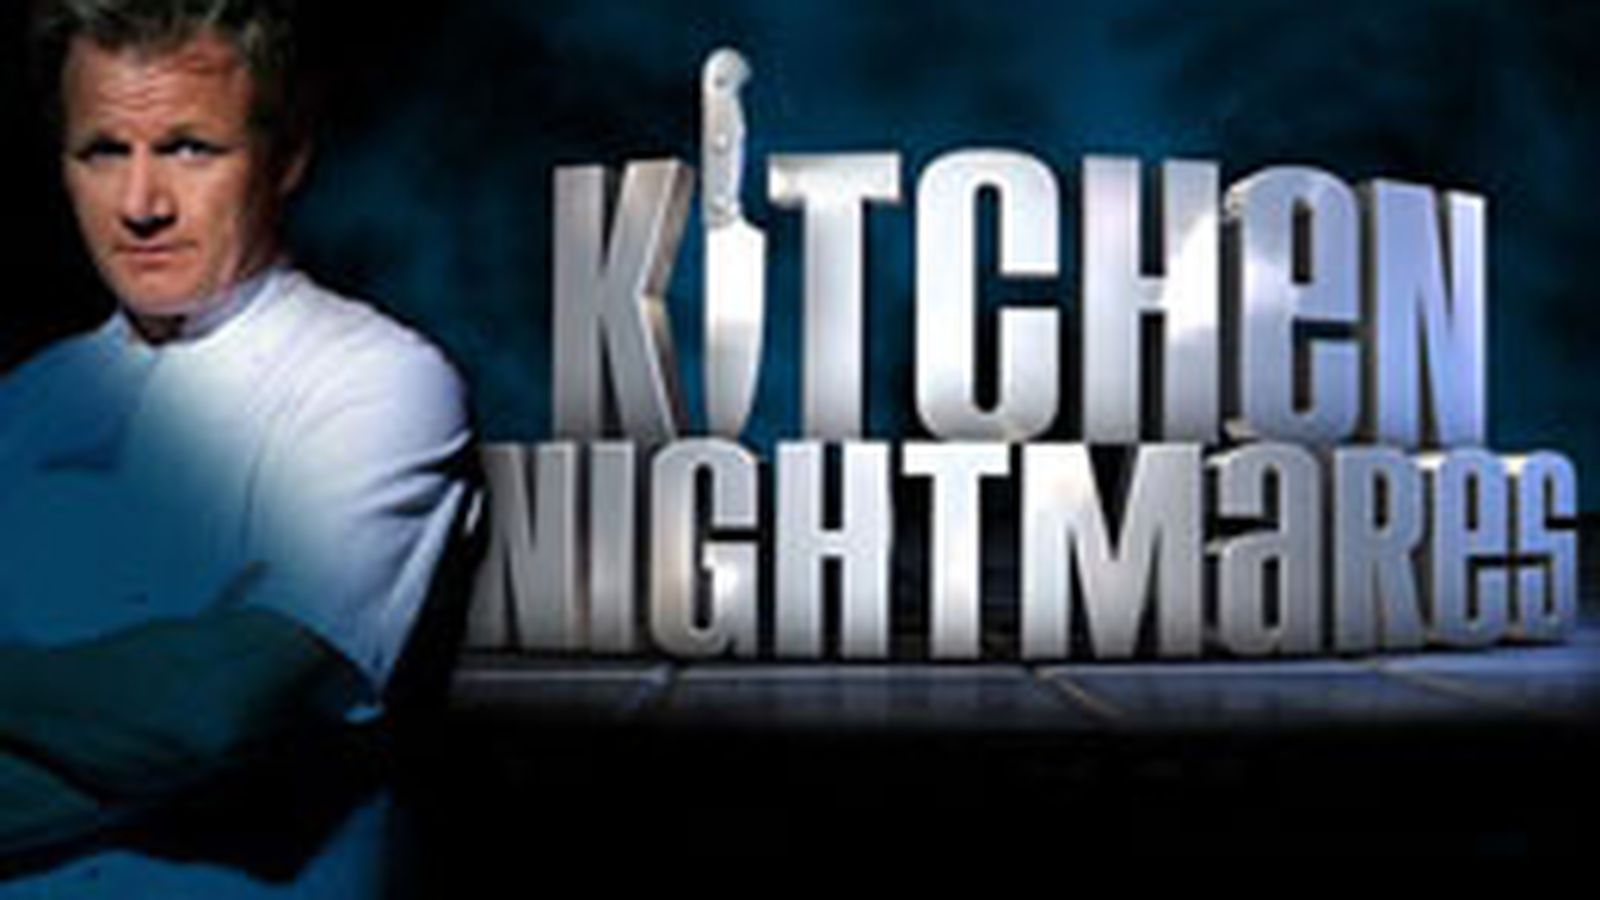 the total fakery of a kitchen nightmares taping - eater